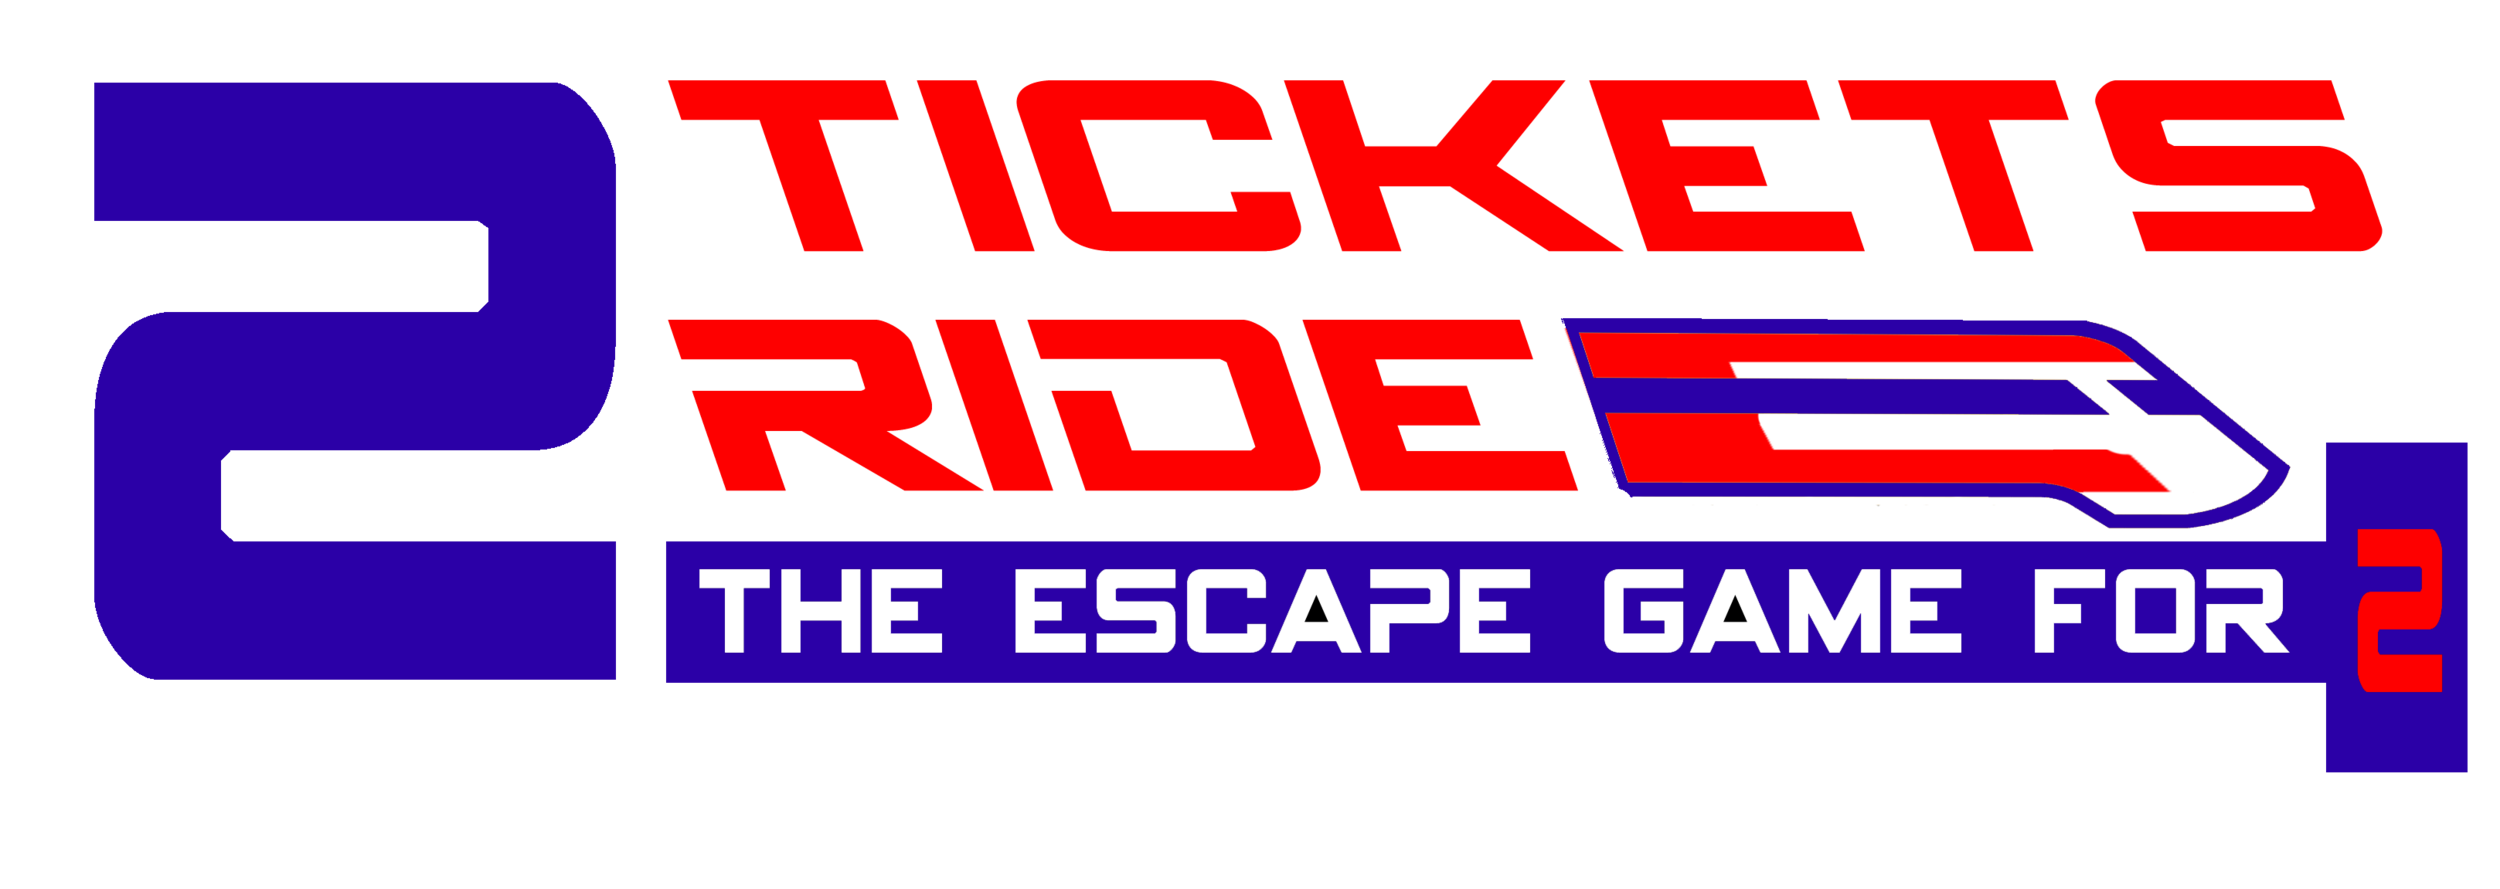 2Ticket2Ride - Full Size - Strapline.png